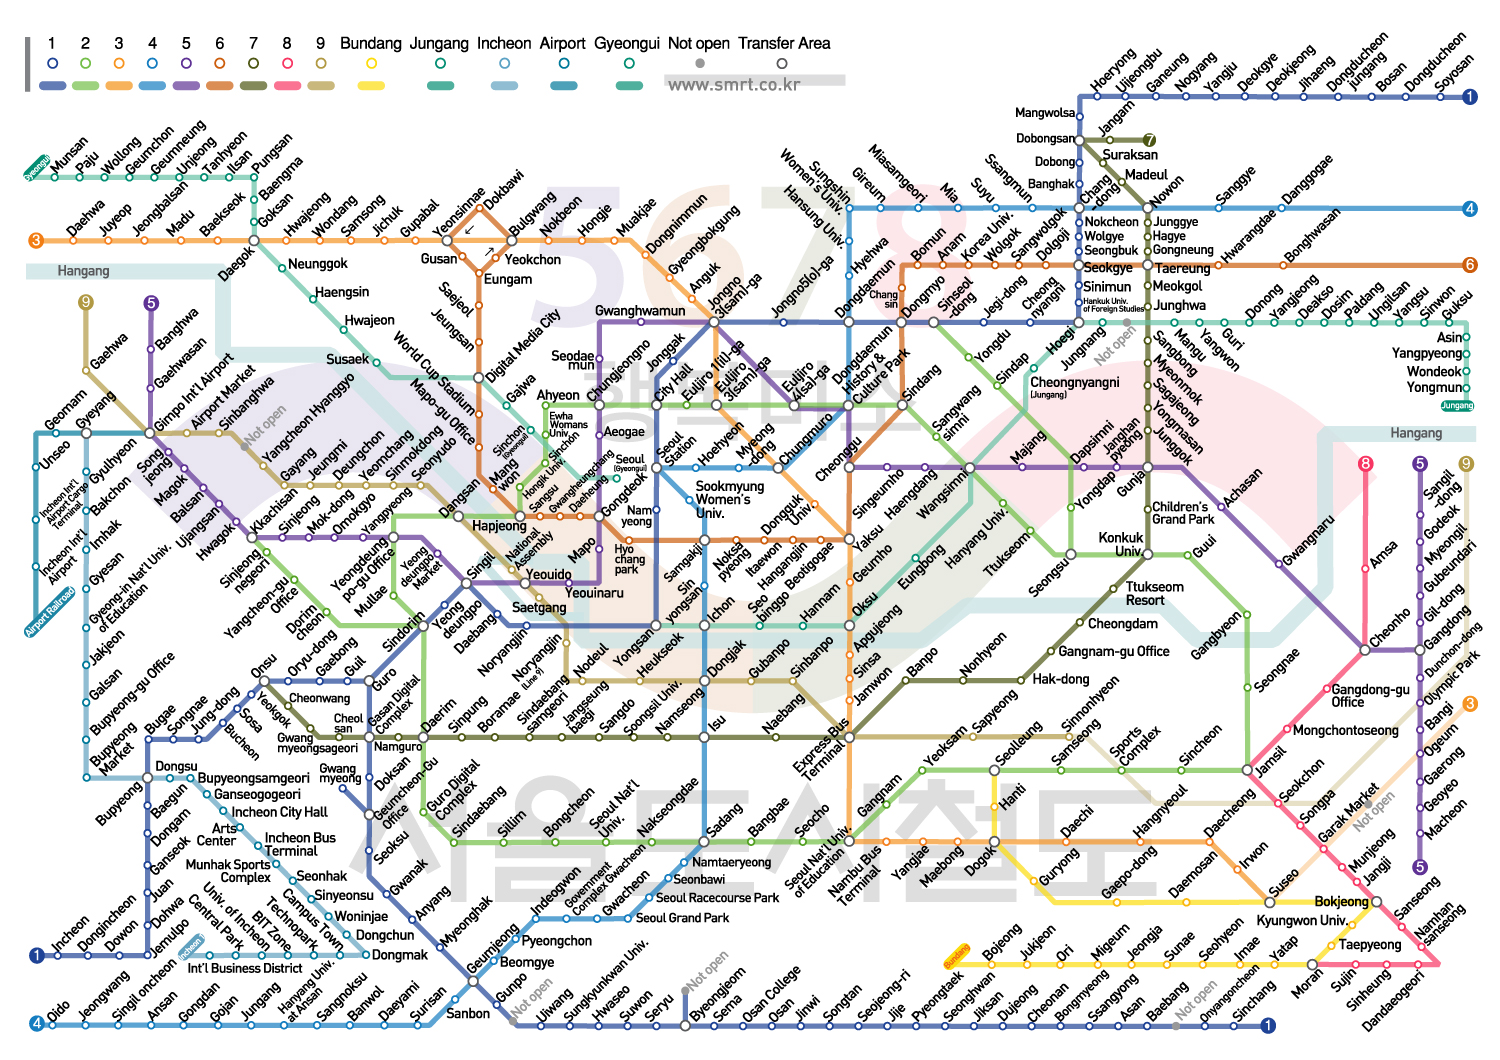 Eoul Subway Map.File Seoul Subway Map English 4259059378 Jpg Wikimedia Commons